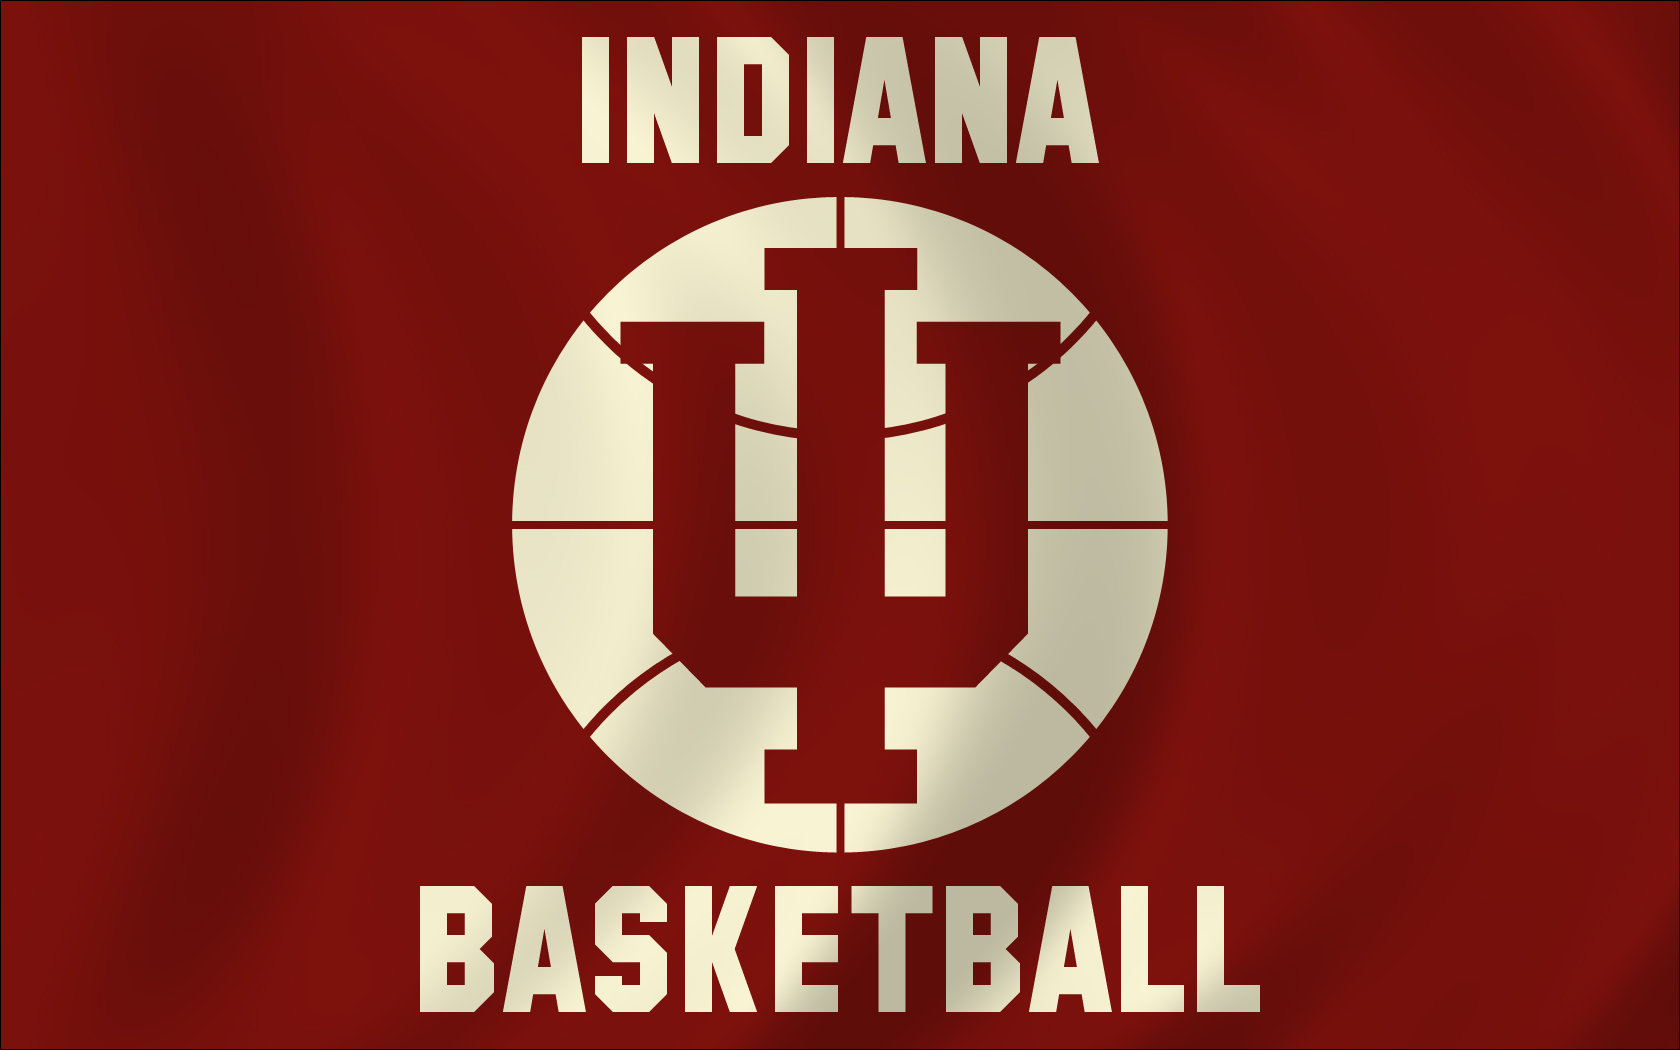 Indiana Basketball Flag by monkeybiziu 1680x1050